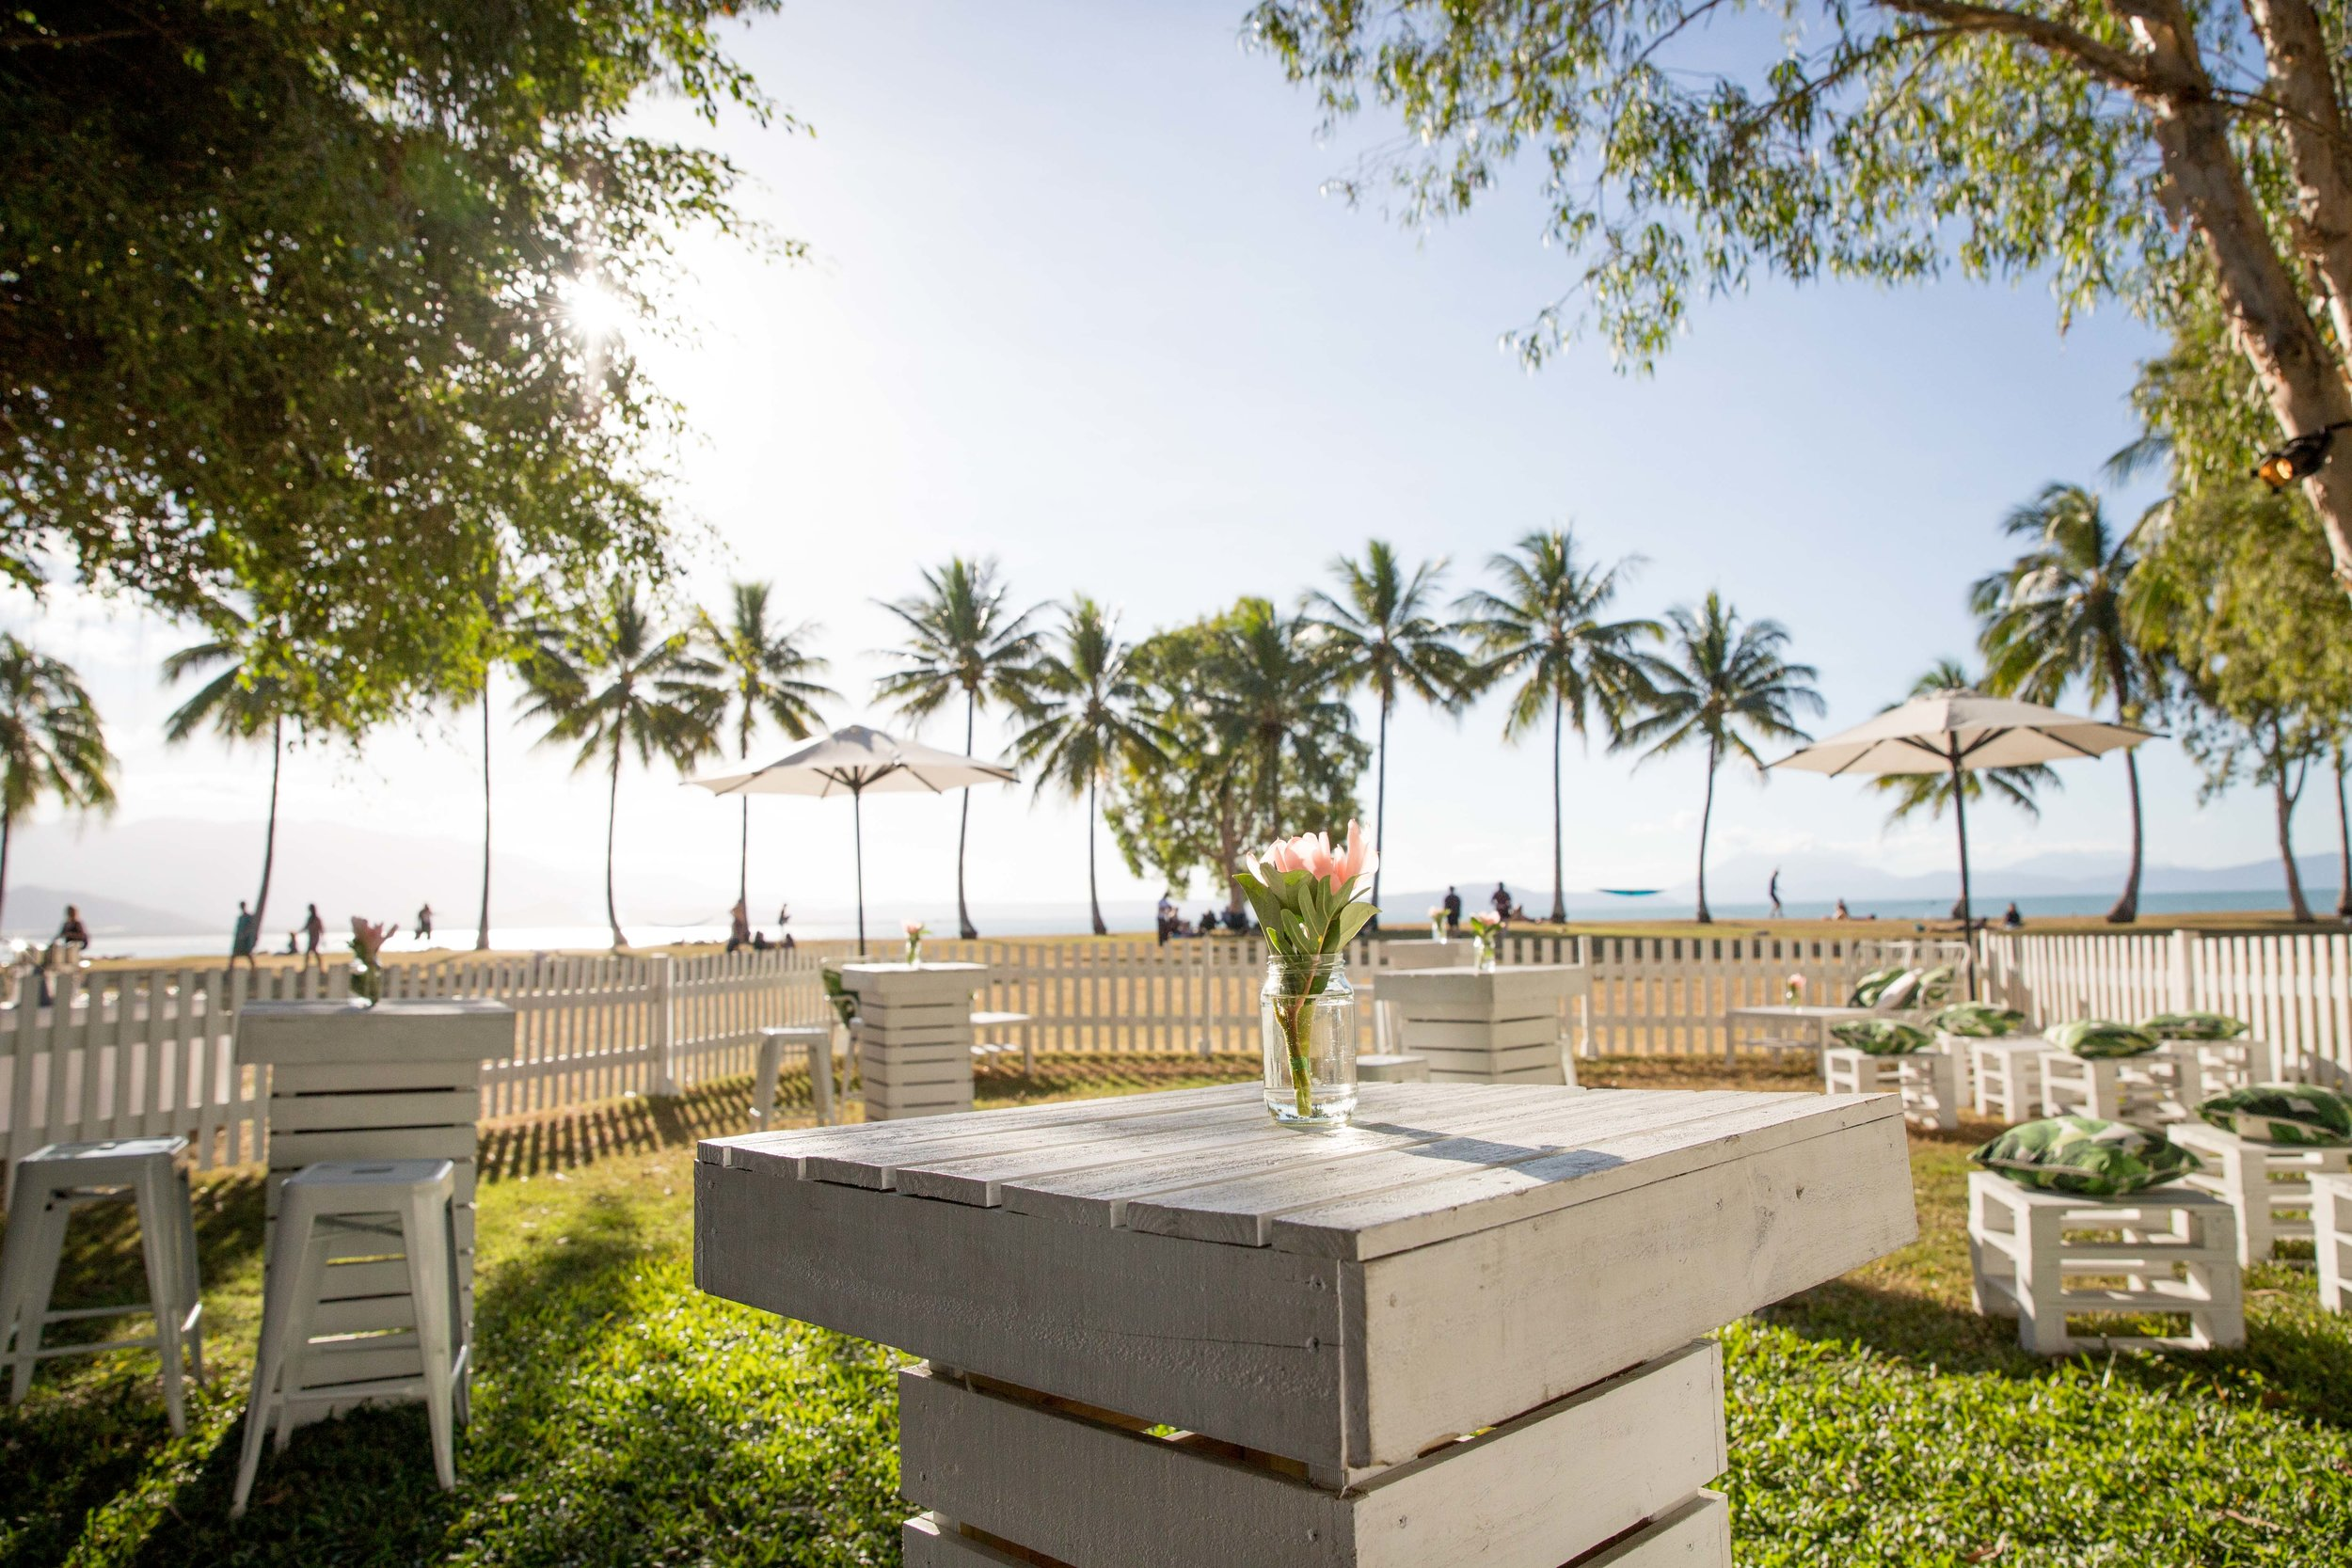 Rex Smeal Park - This stunning sea side park is perfect for your next event!